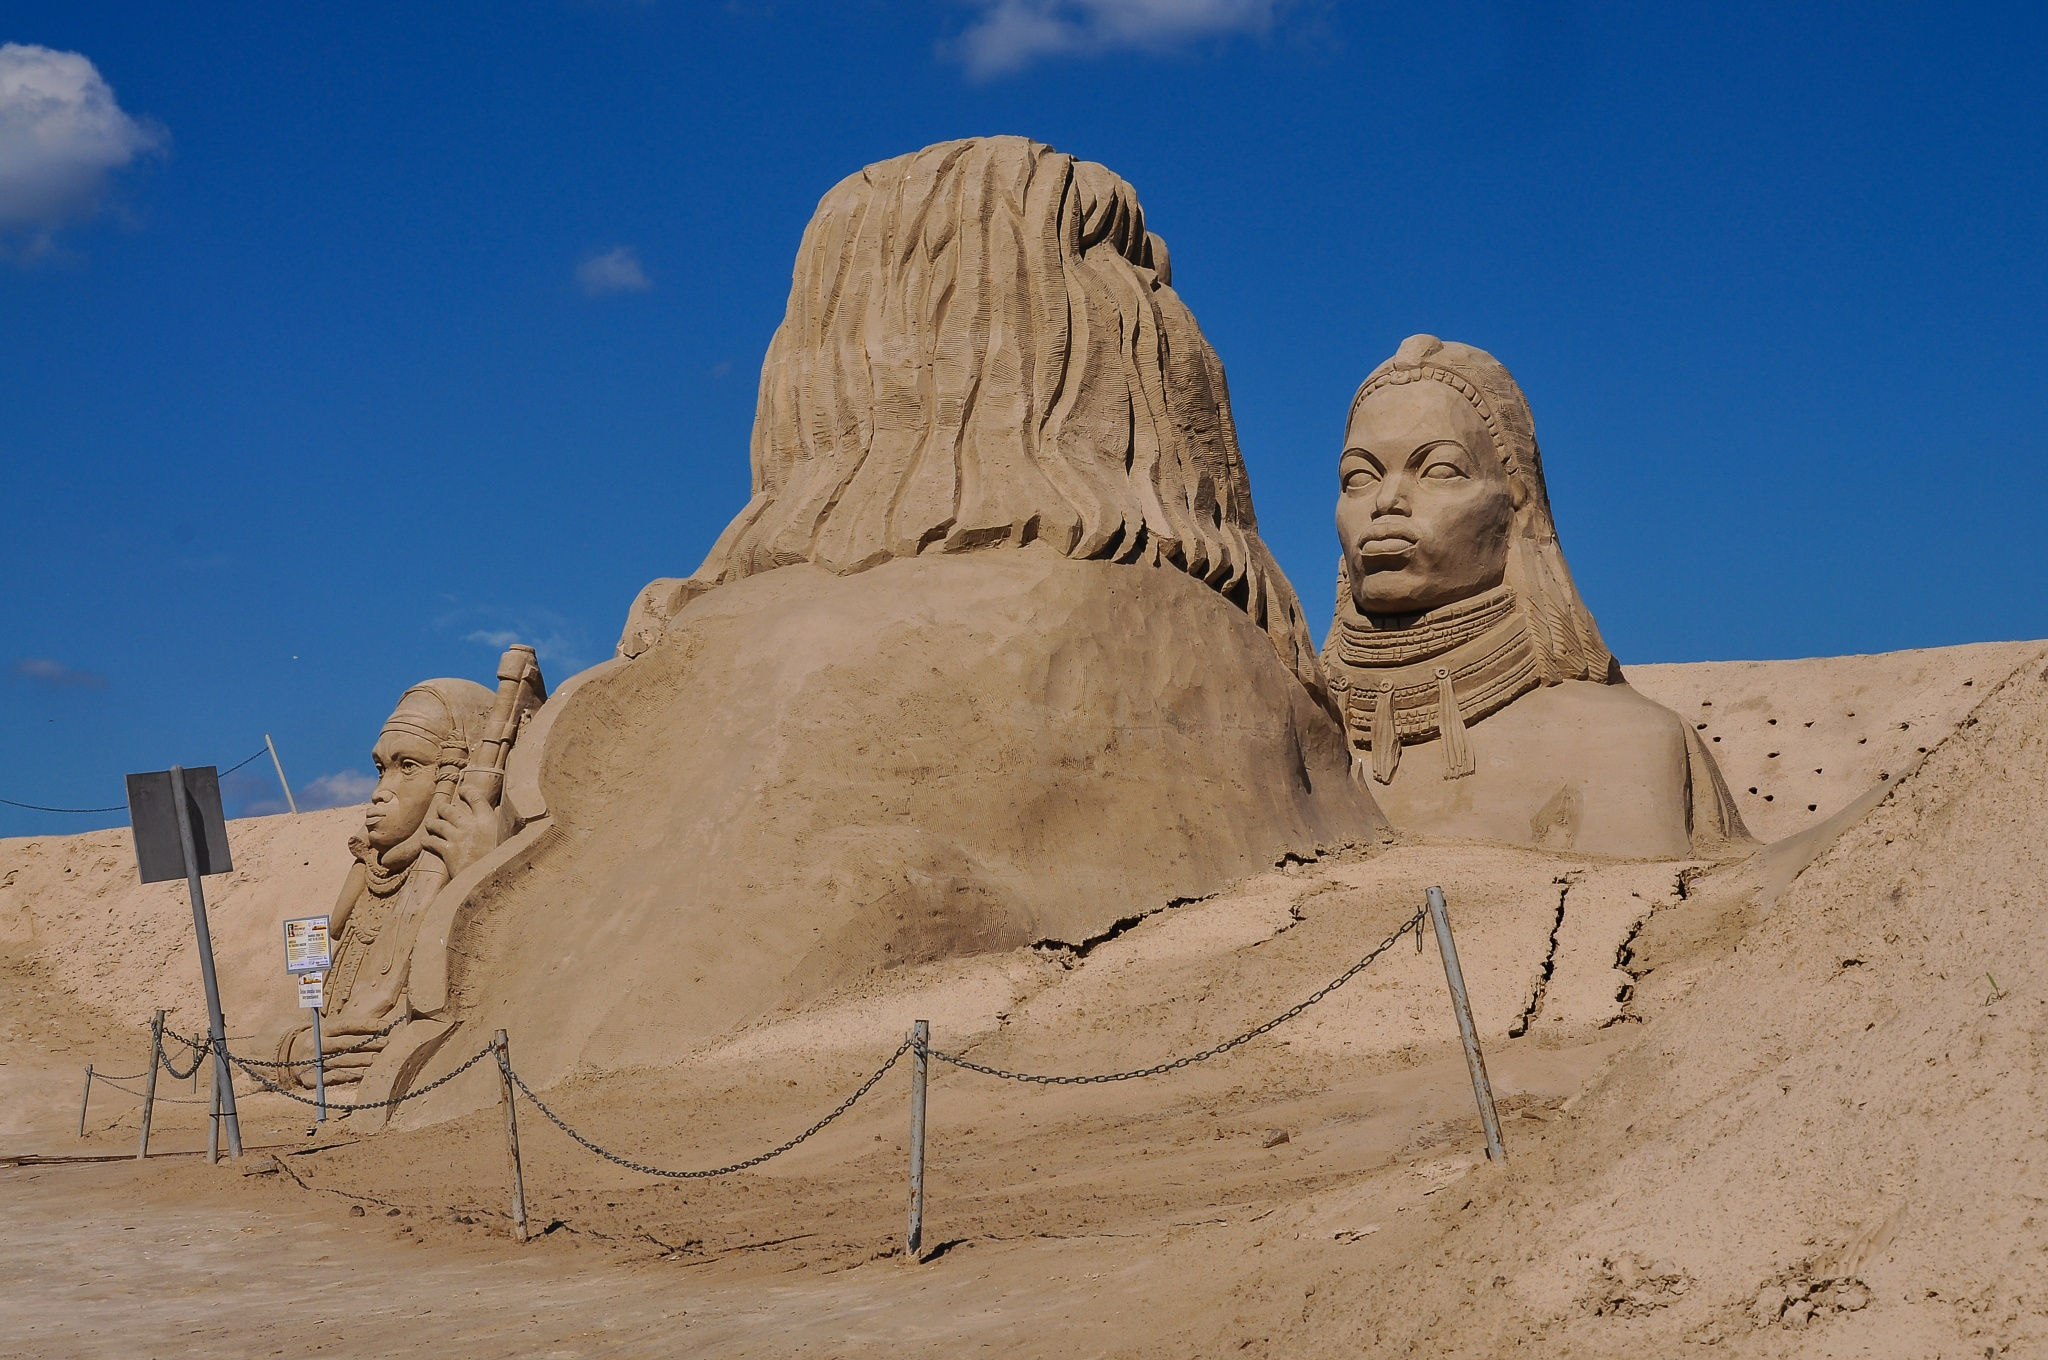 Sand sculptures by Irena Gedgaudiene